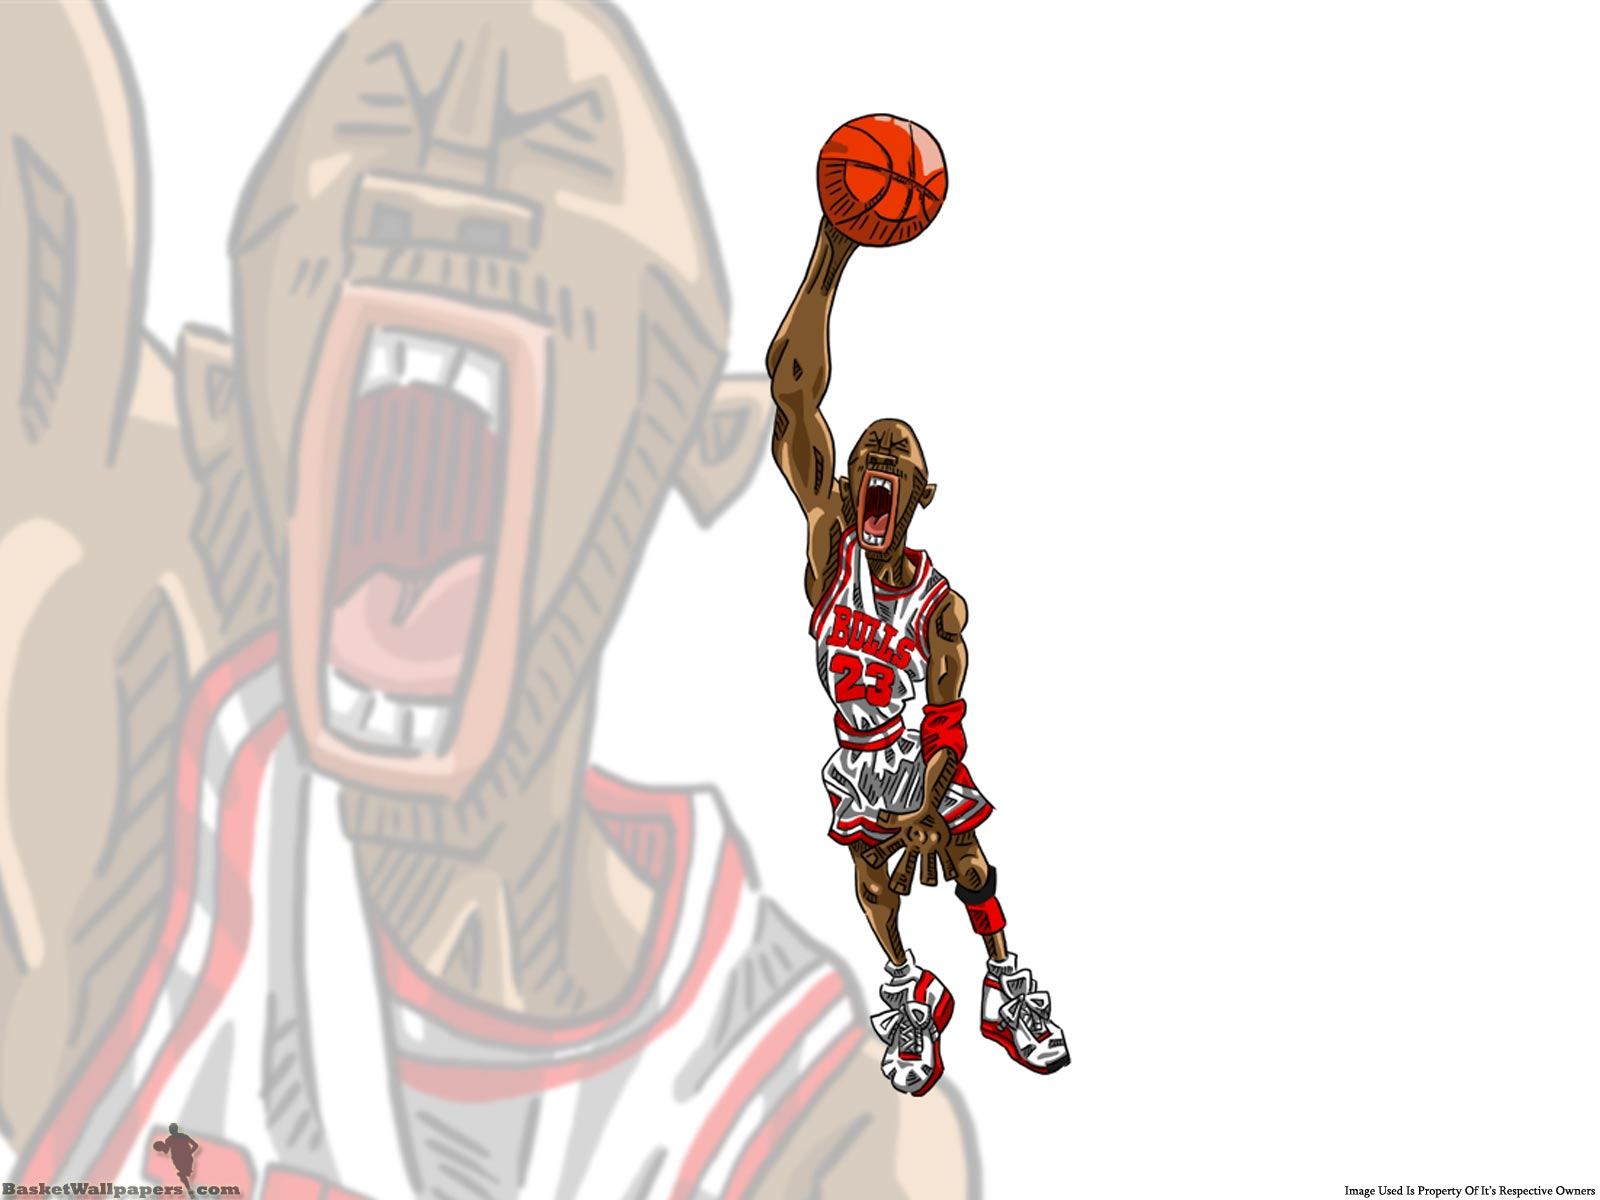 Basketball Cartoon Wallpapers: HD Basketball Wallpapers